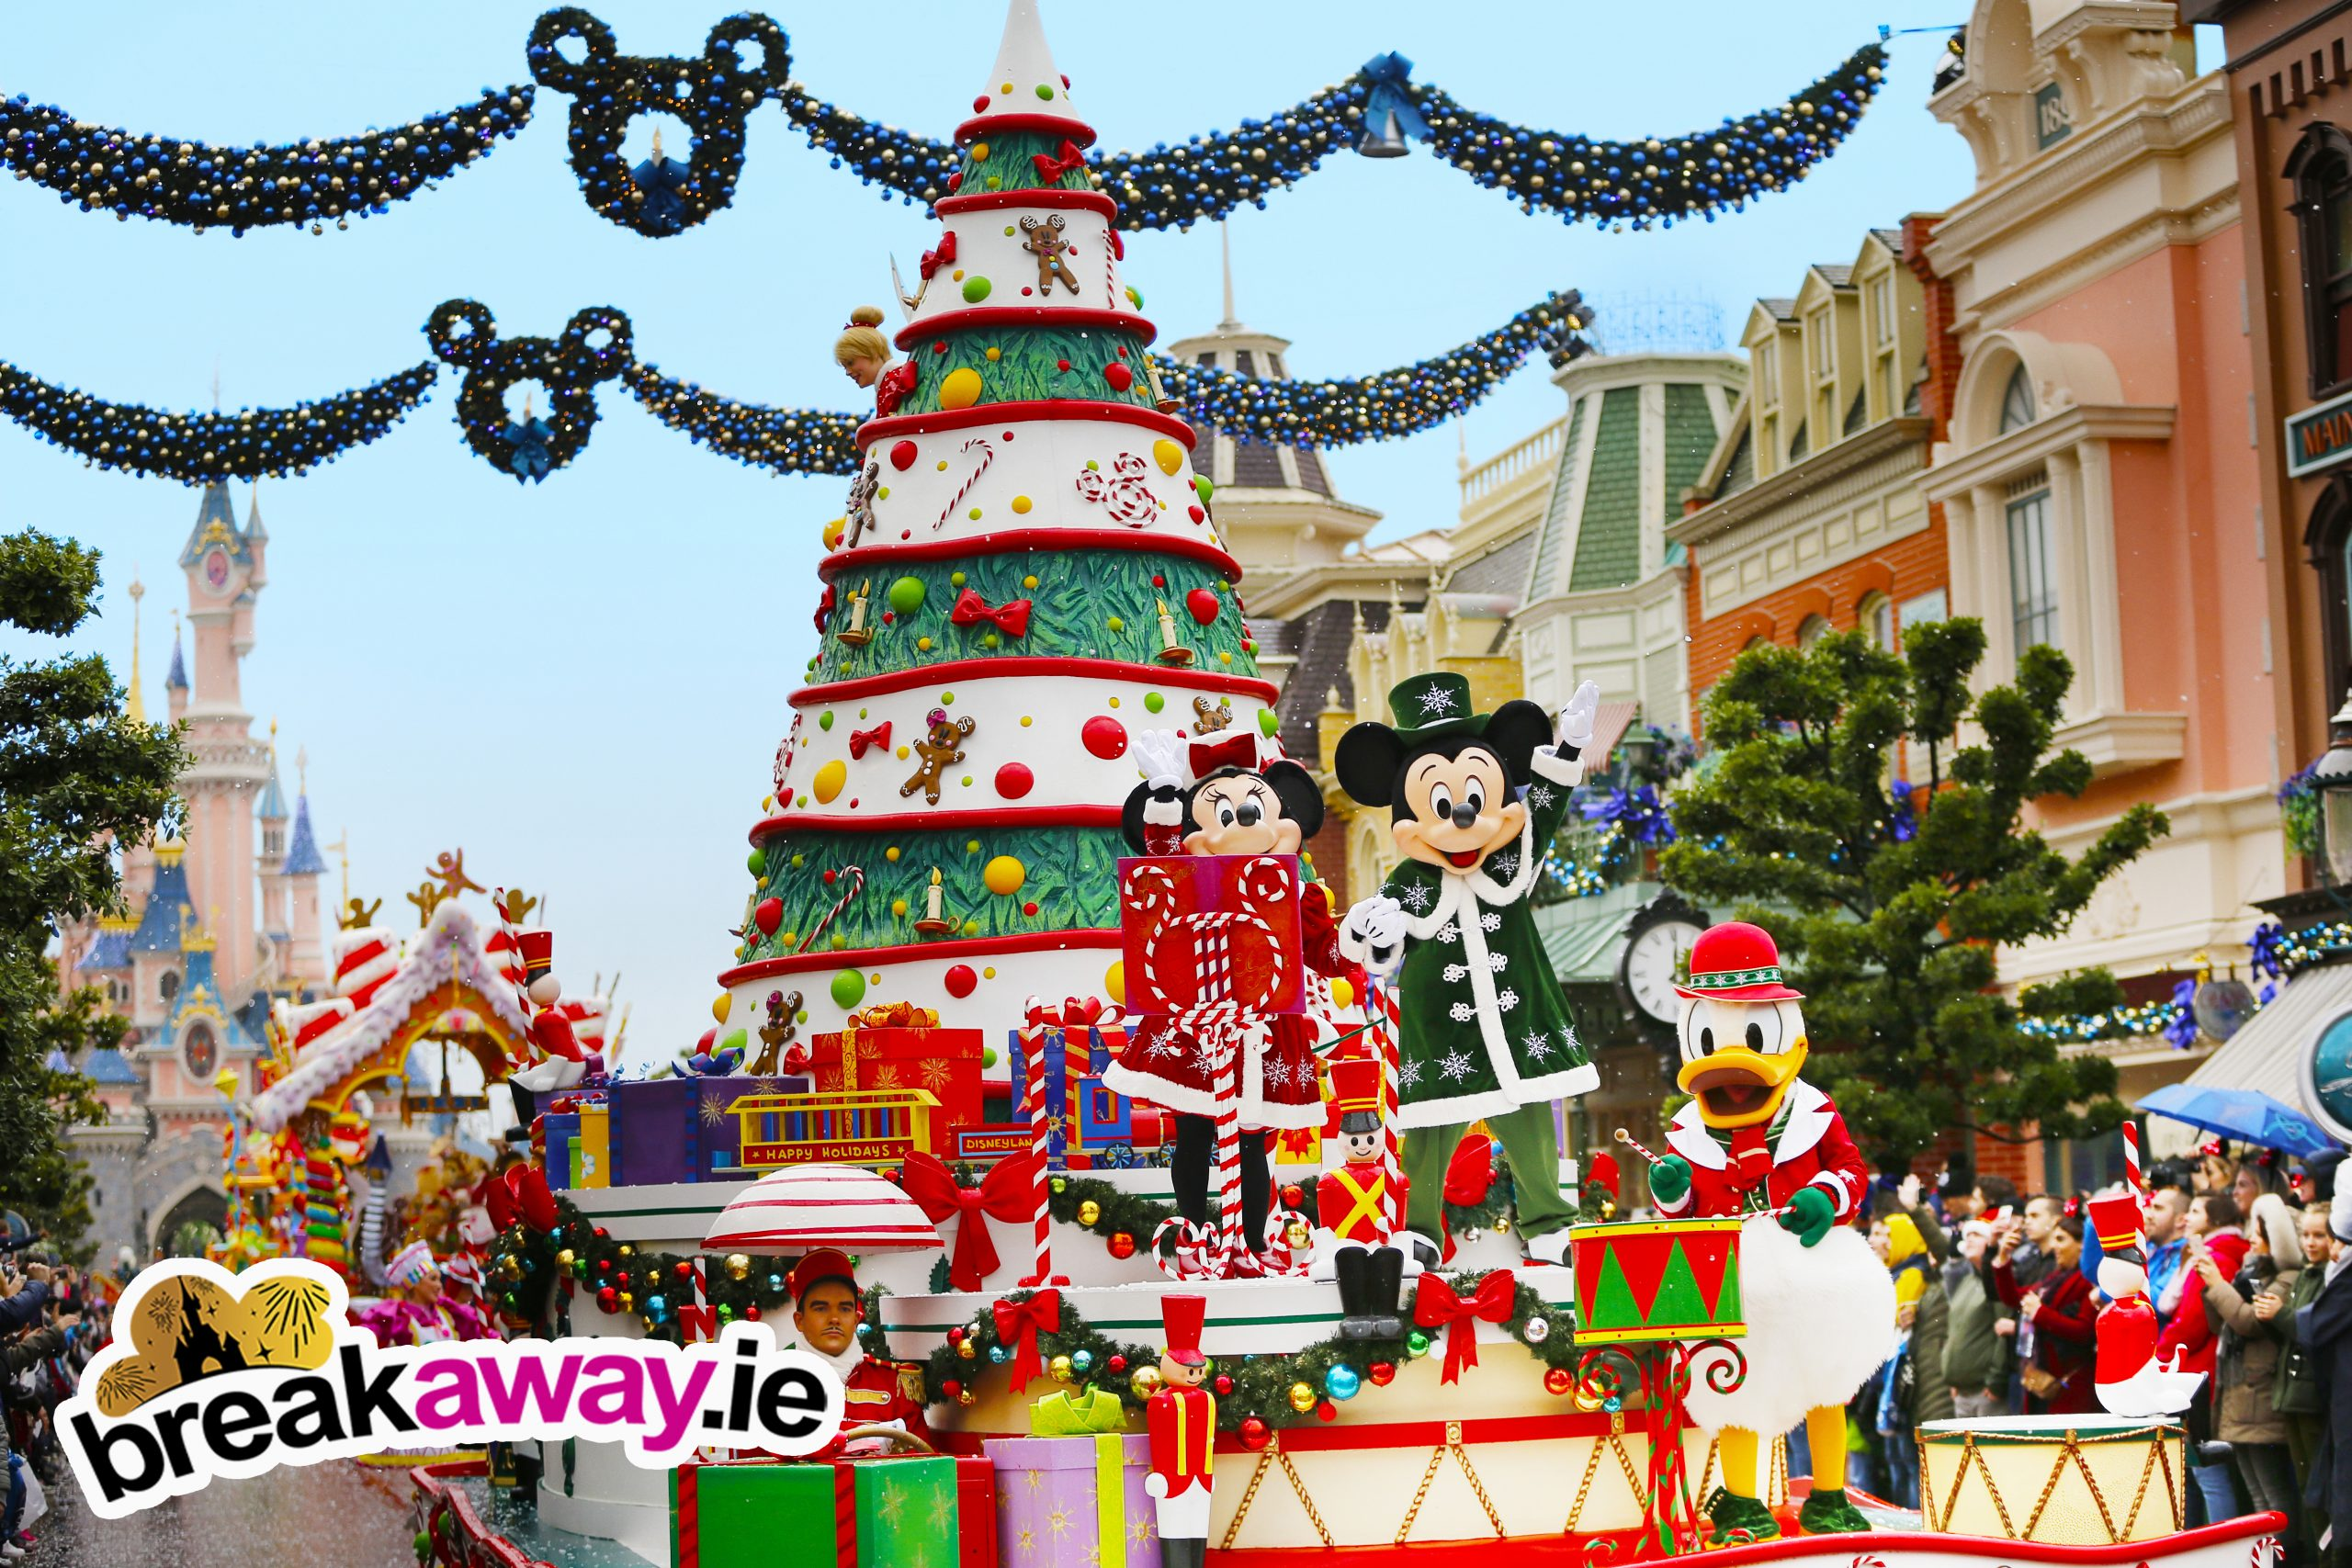 disneyland paris offer from ireland for chrismtas